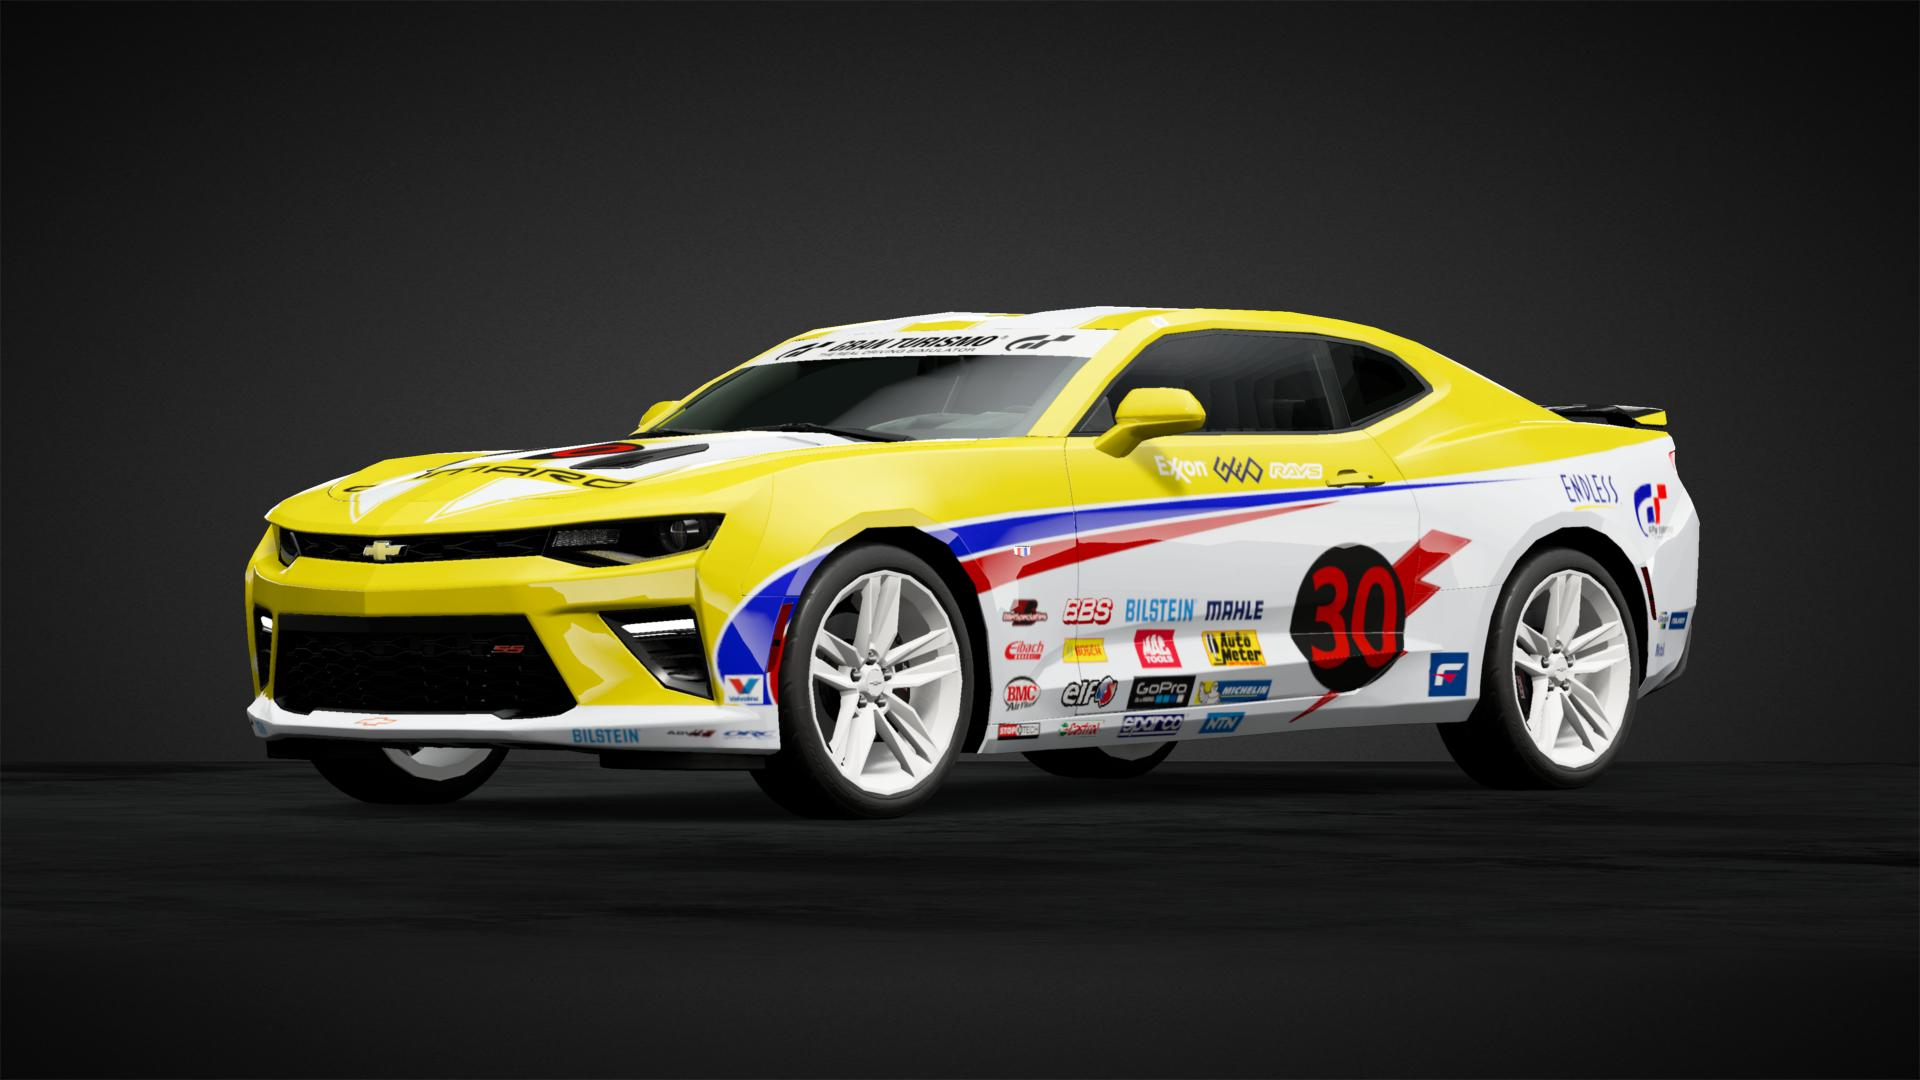 Camaro 30th Anniversary RM (GT1) - Car Livery by RIP_Bust